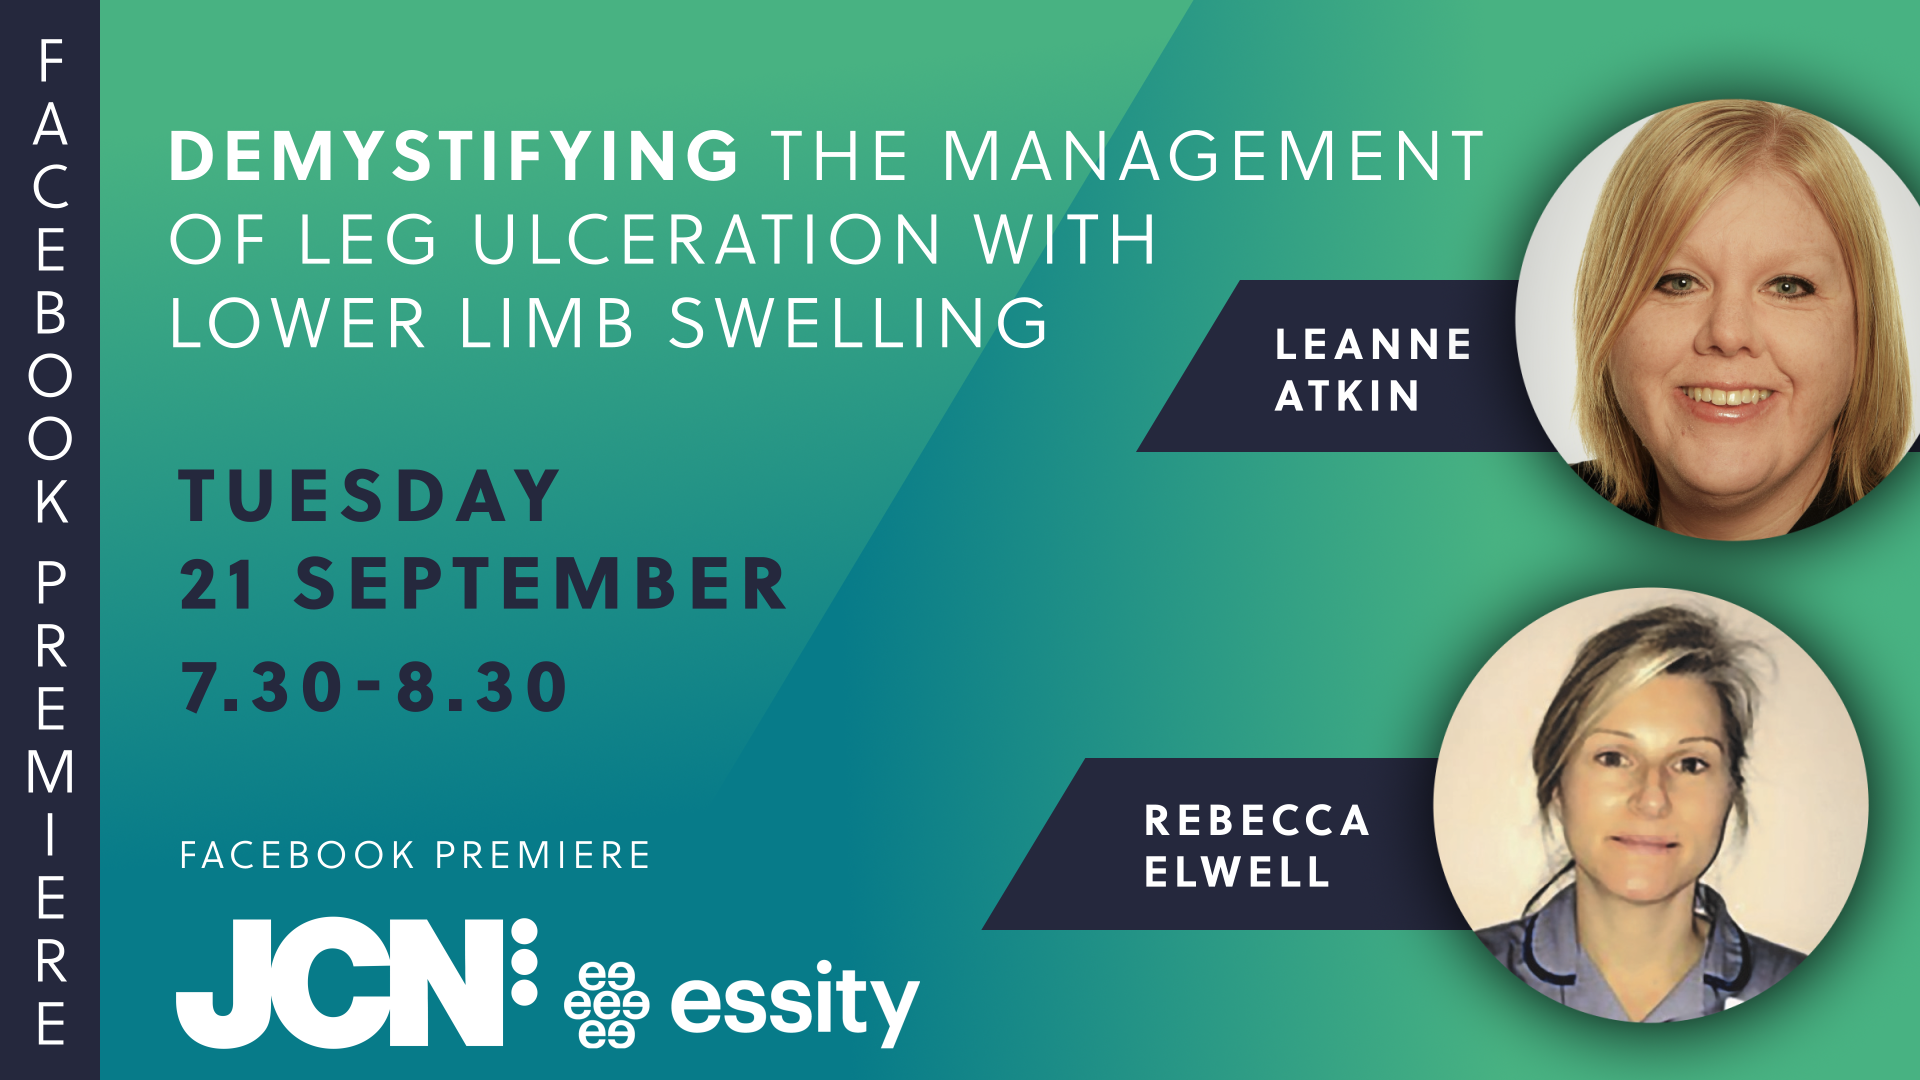 Facebook Live: Demystifying the management of leg ulceration with lower limb swelling